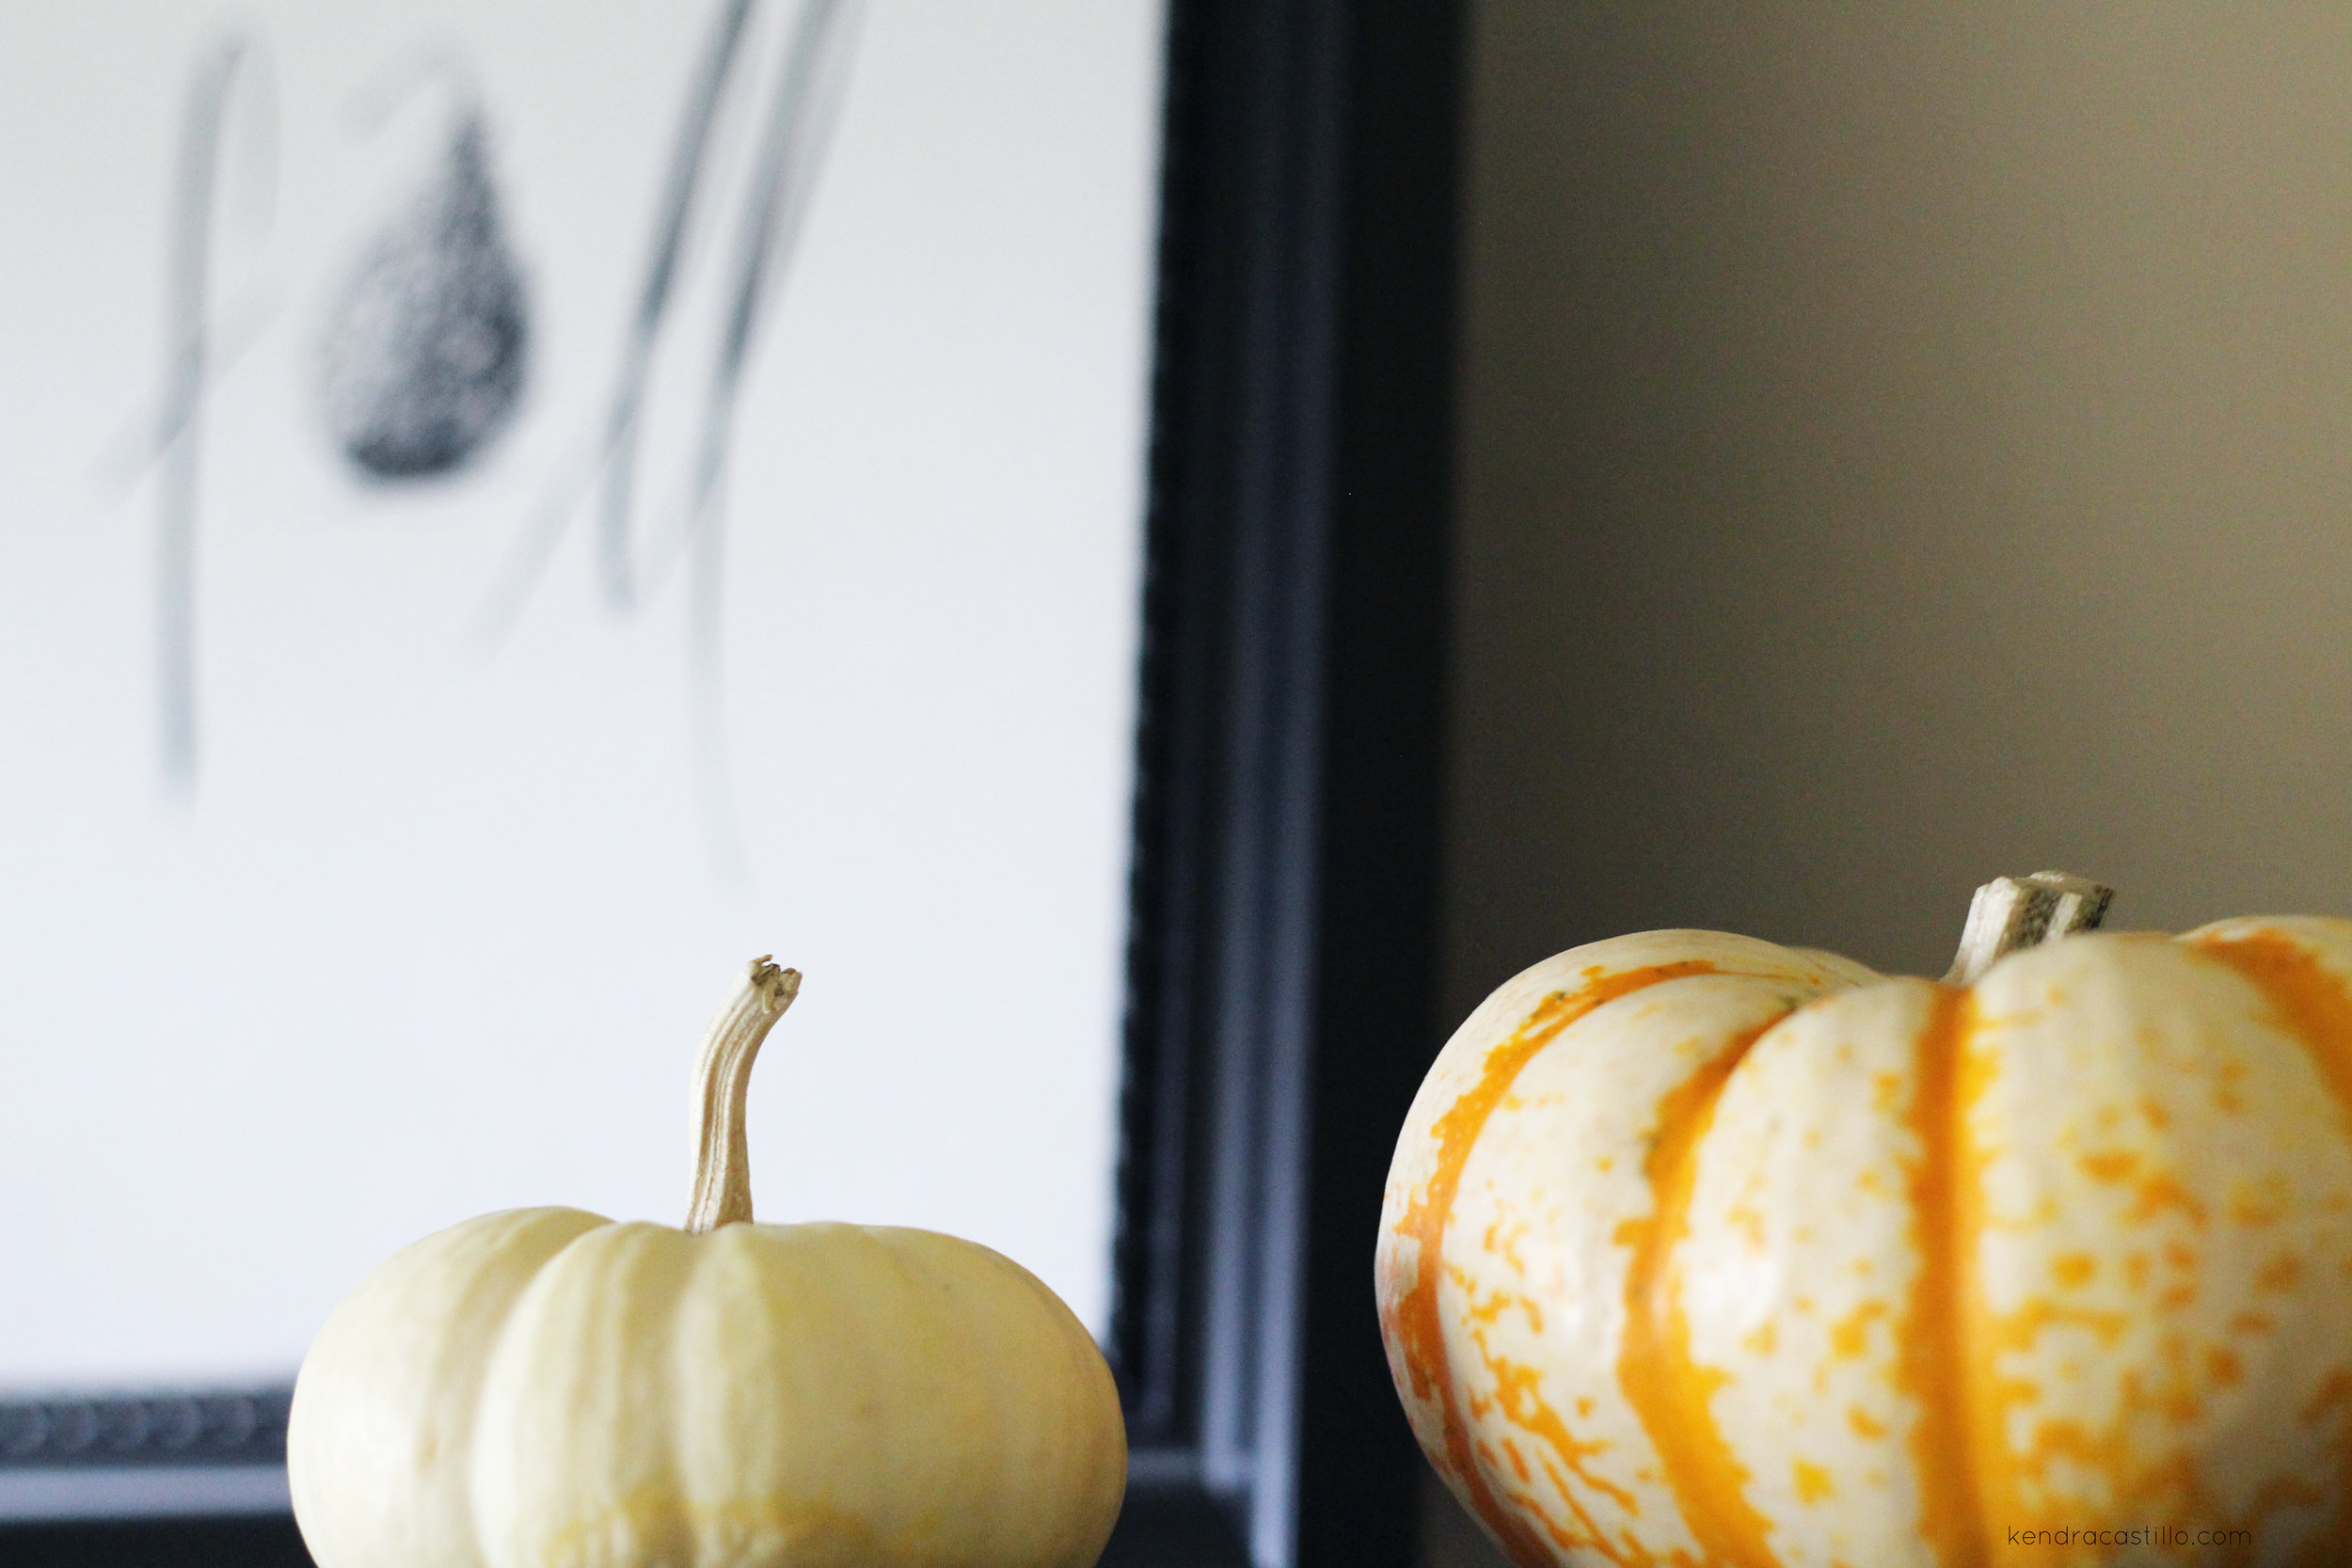 Kendra Castillo: Simple Styling Open Shelves for Fall + a Free Fall Printable